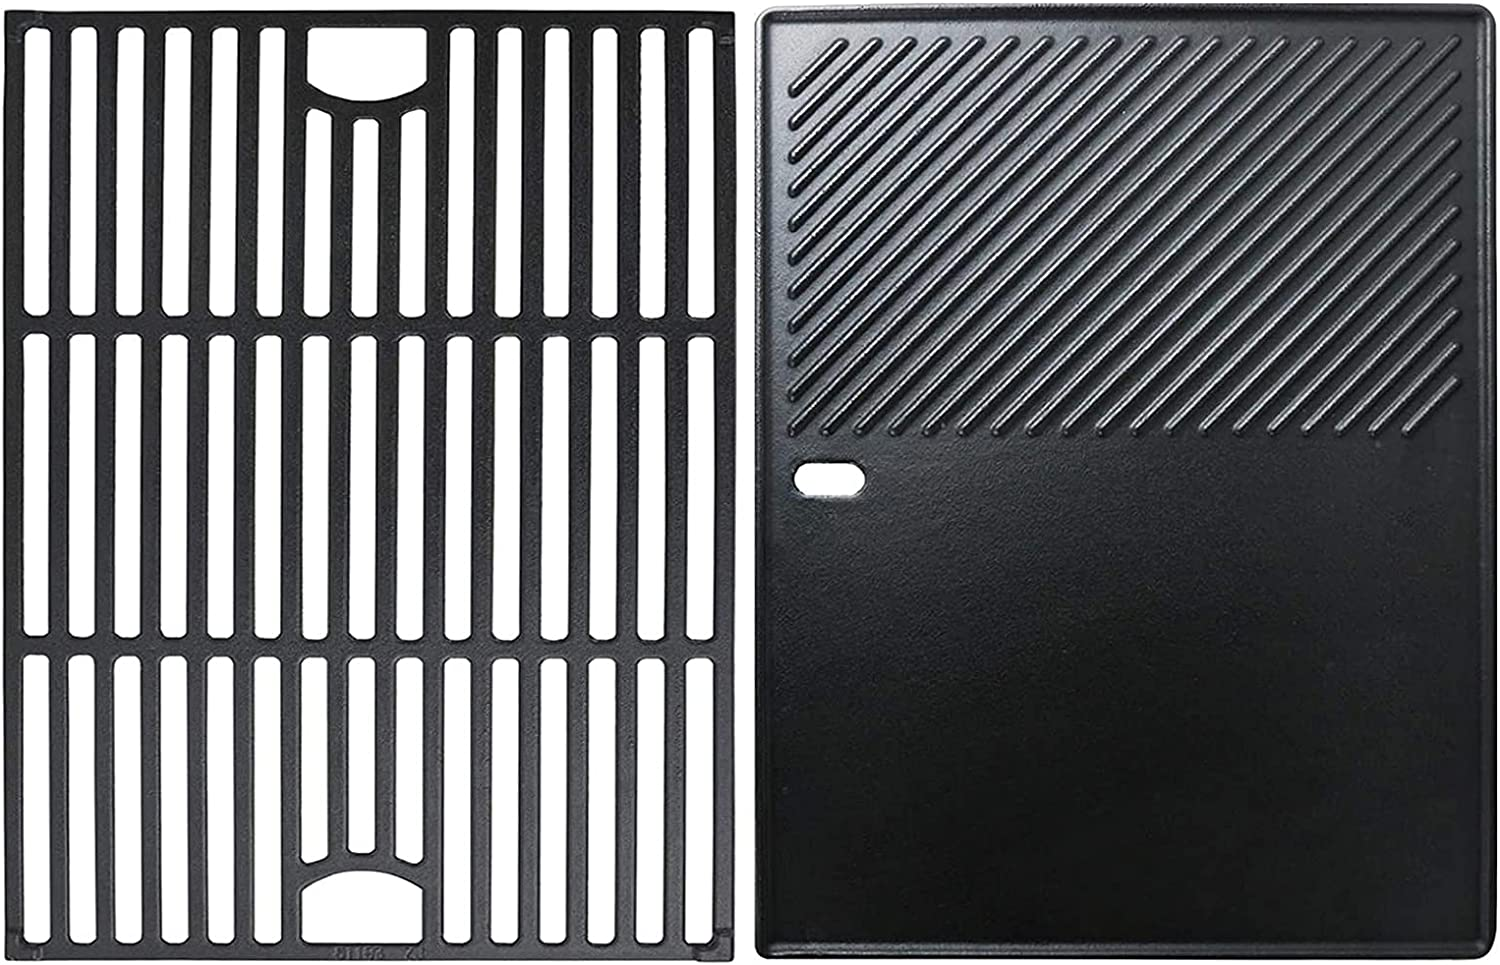 Uniflasy Cast Iron Cooking Grate and Cooking Griddle Replacement for Nexgrill 4 Burner 720-0830H 720-0670A 720-0783E 5 Burner 720-0888N Uniflame GBC981 Replacement for Kenmore 41516106210 415.16106210 : Patio, Lawn & Garden